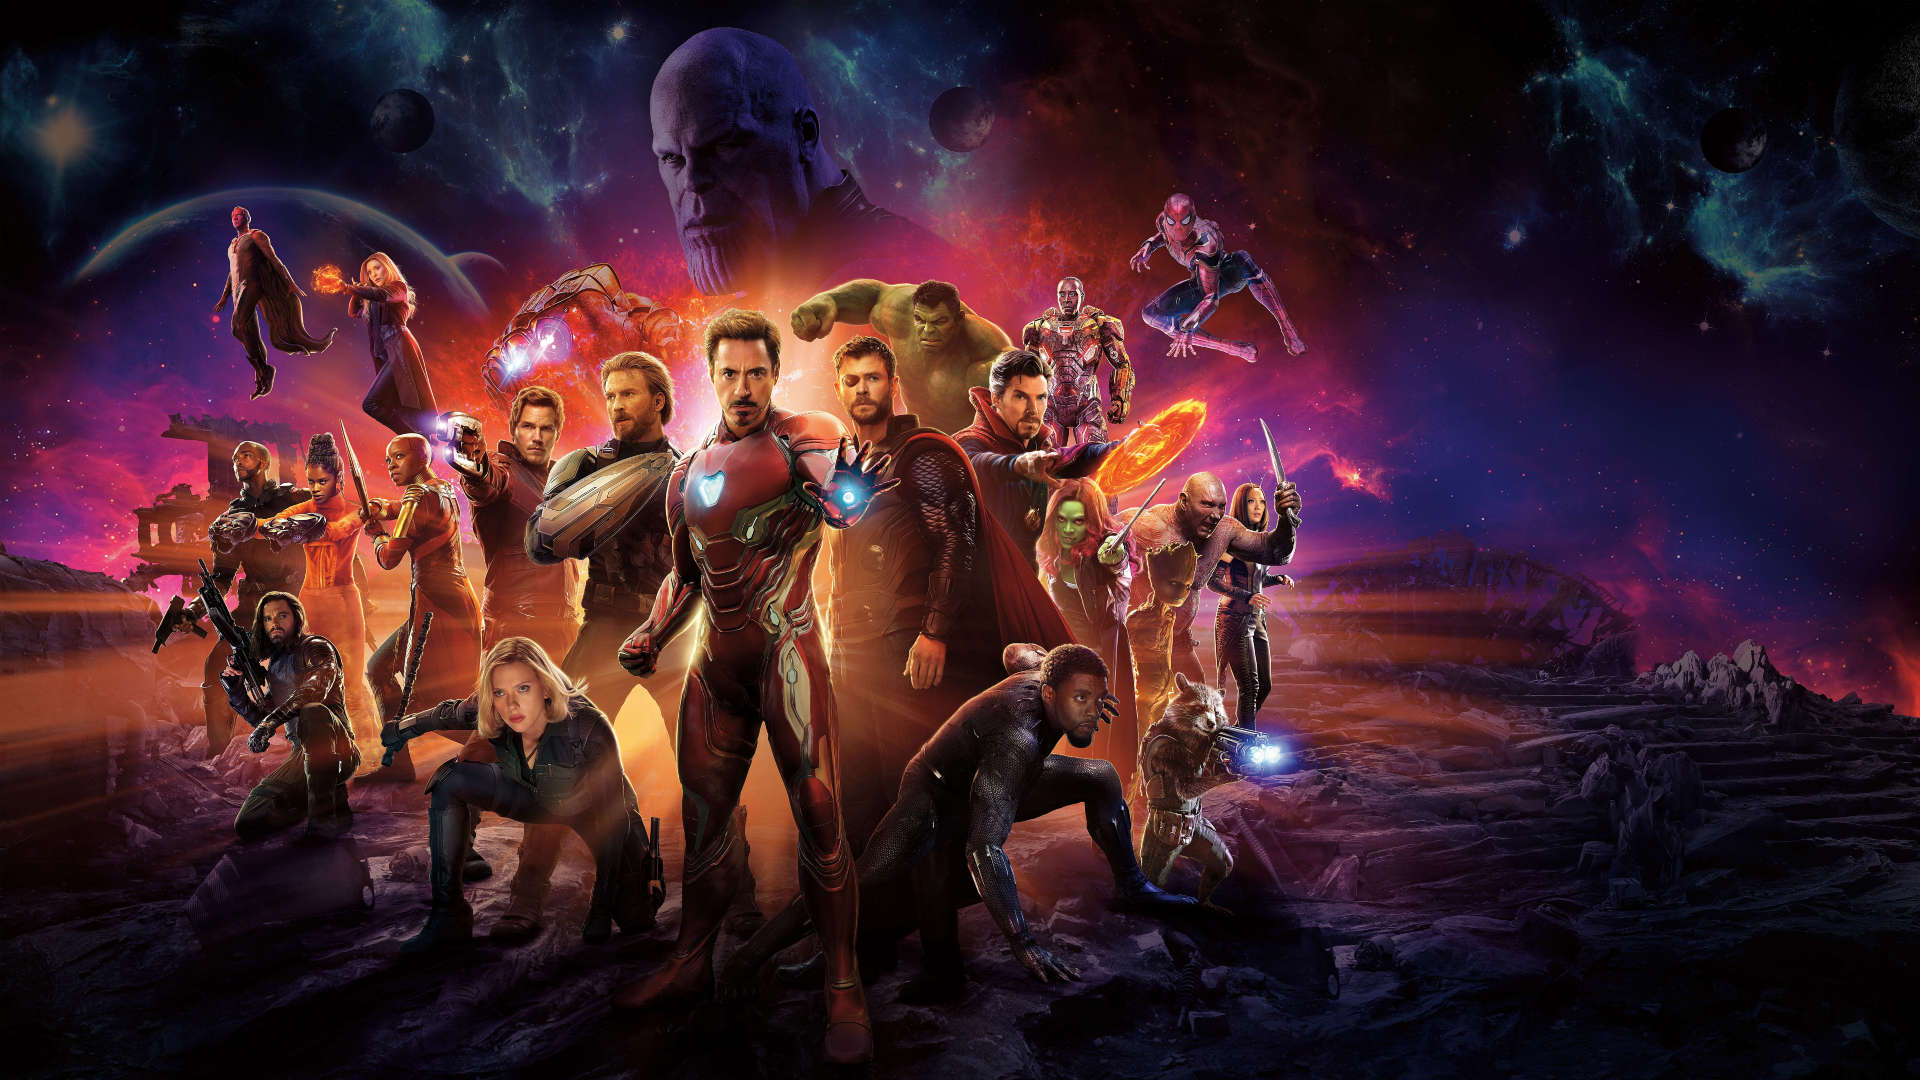 Avengers Infinity War Wallpapers 33 images   Wallpaper Stream 1920x1080